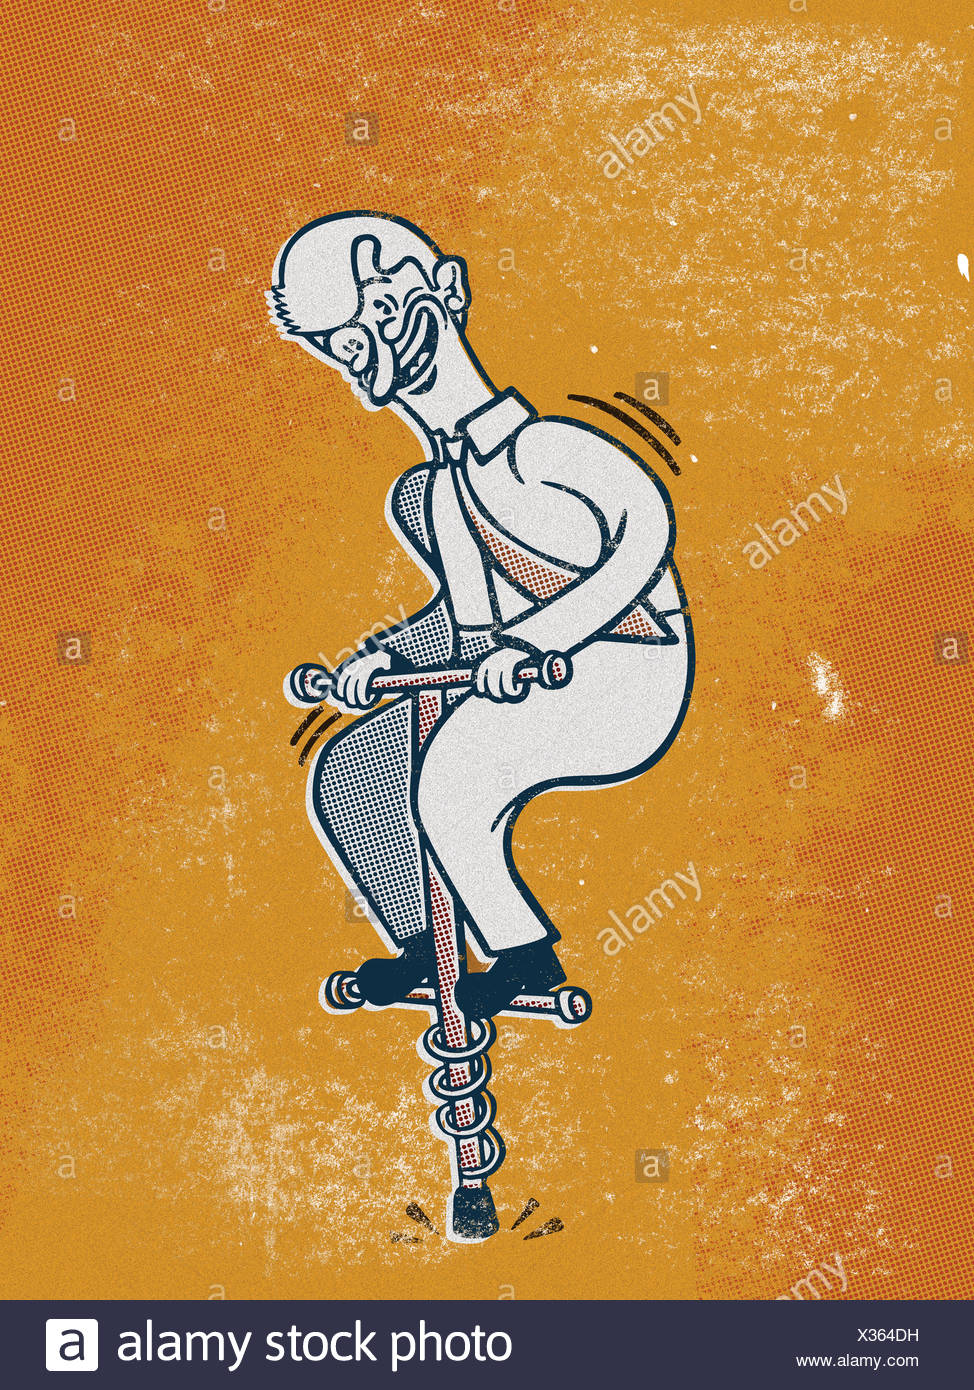 Drawing of a businessman on a pogo stick Stock Photo